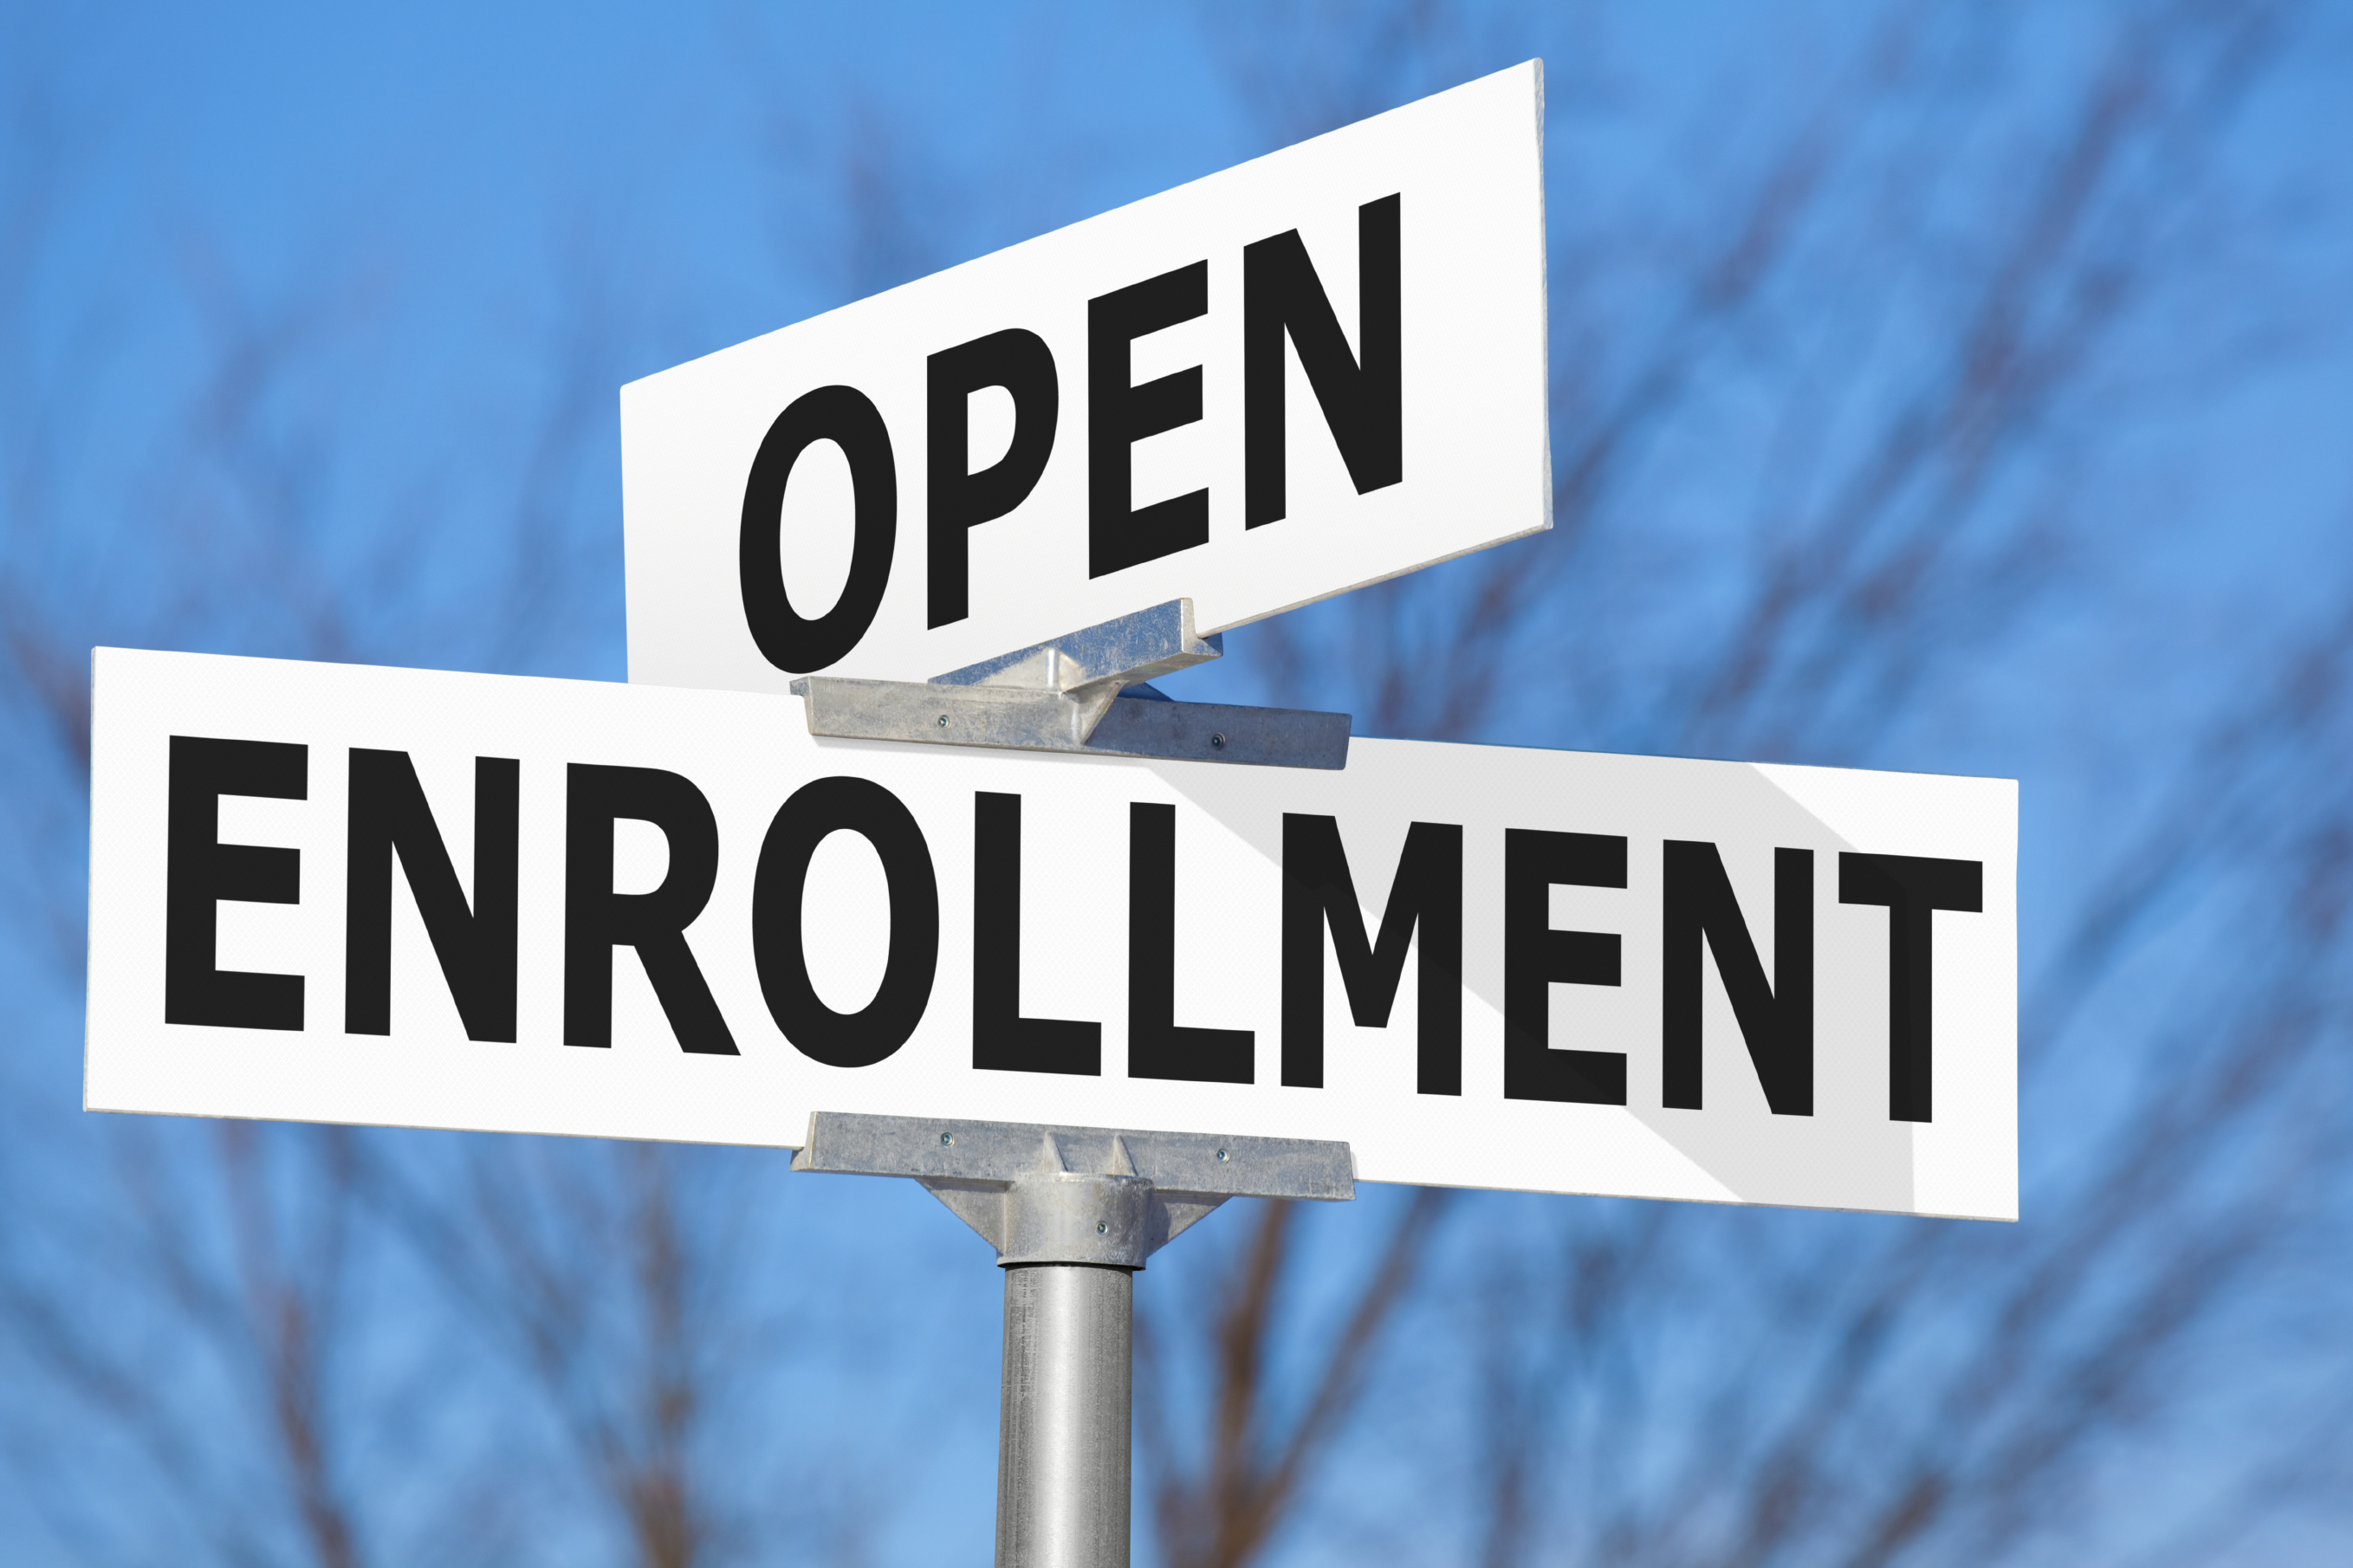 Open Enrollment Sign.jpg